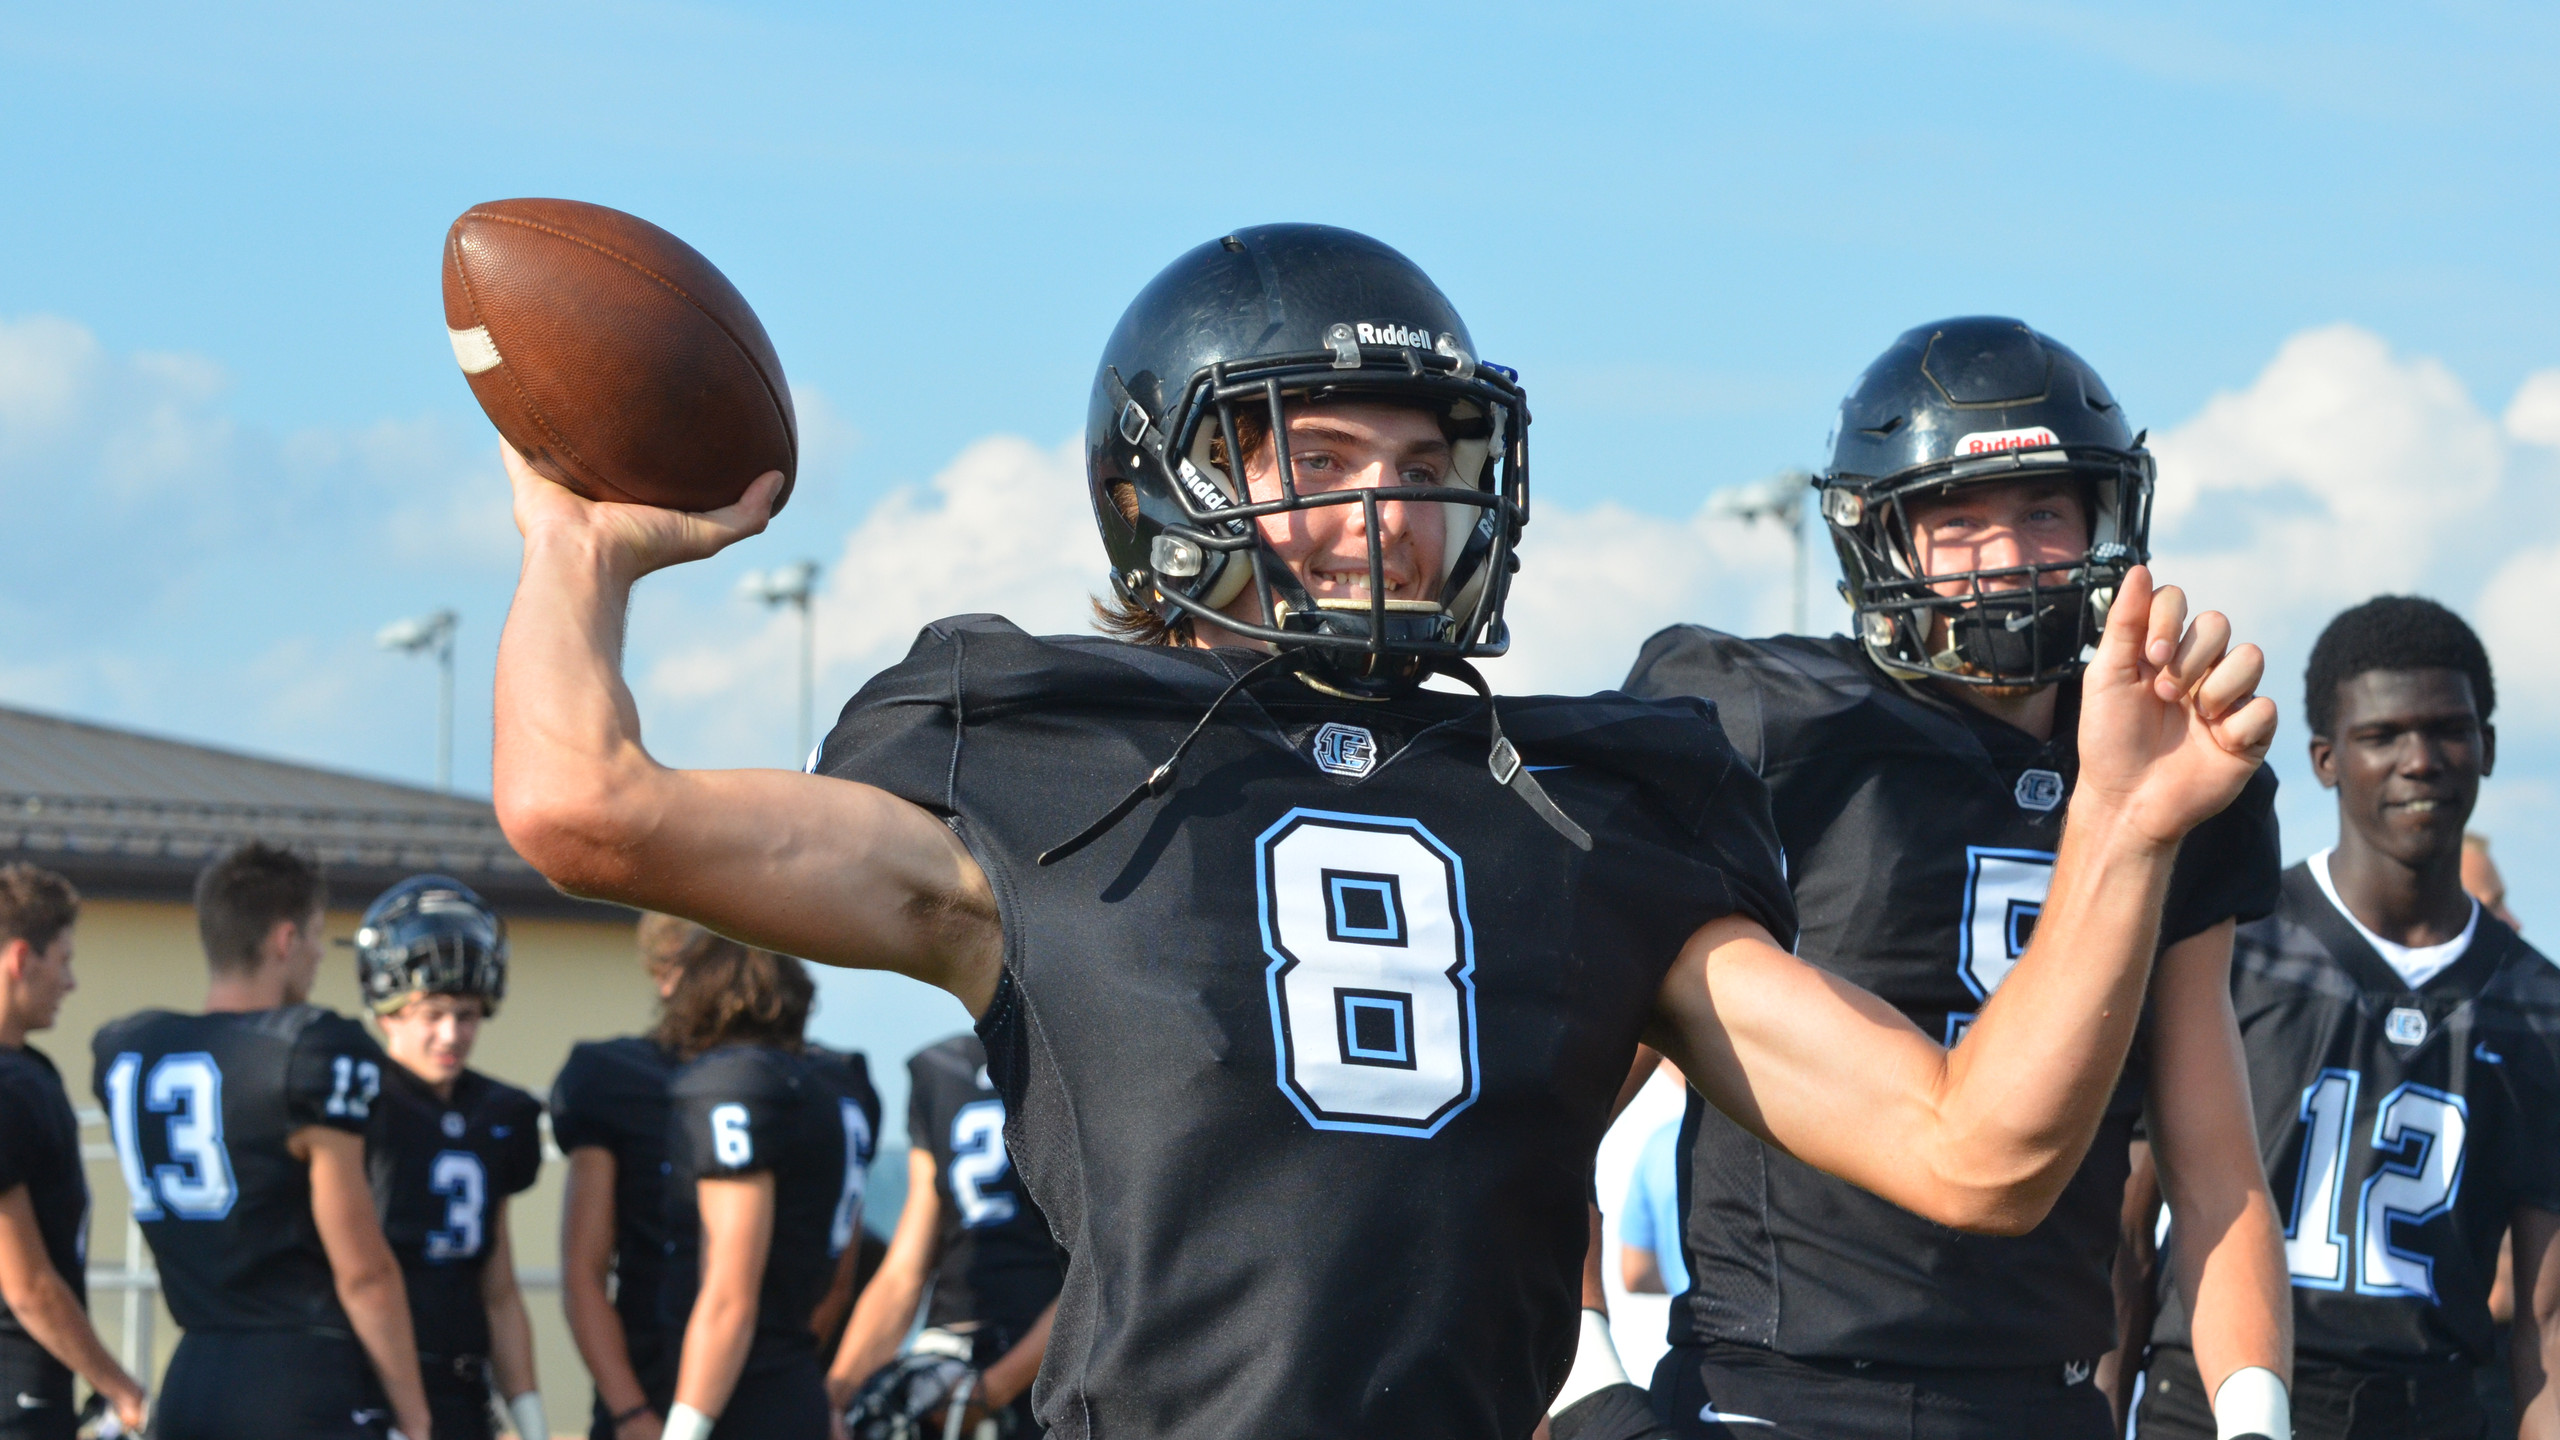 Quarterback junior Tyler Trudo warms up before the scrimmage. Photo by Makylah Perez